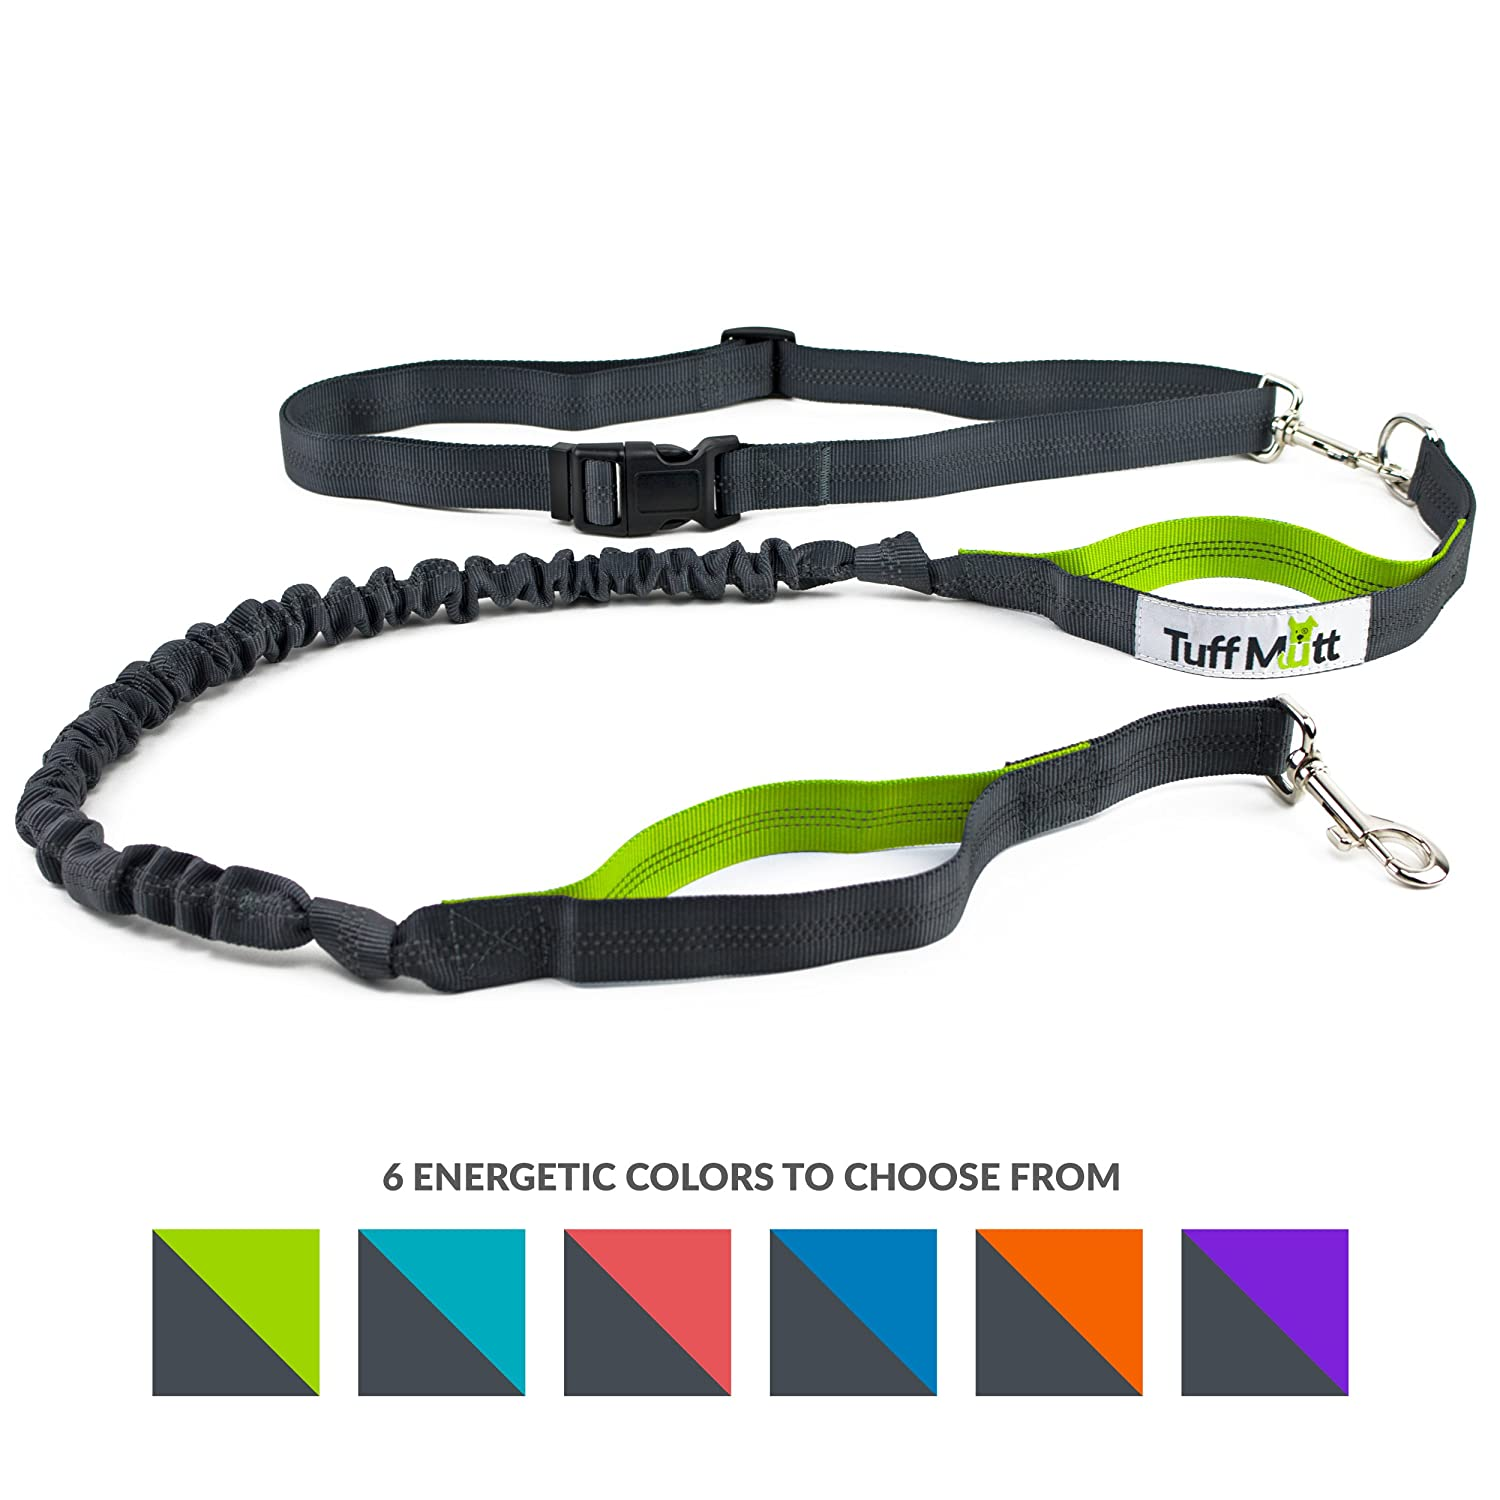 The Best Dog Leashes For Hiking: Reviews & Buying Guide 1